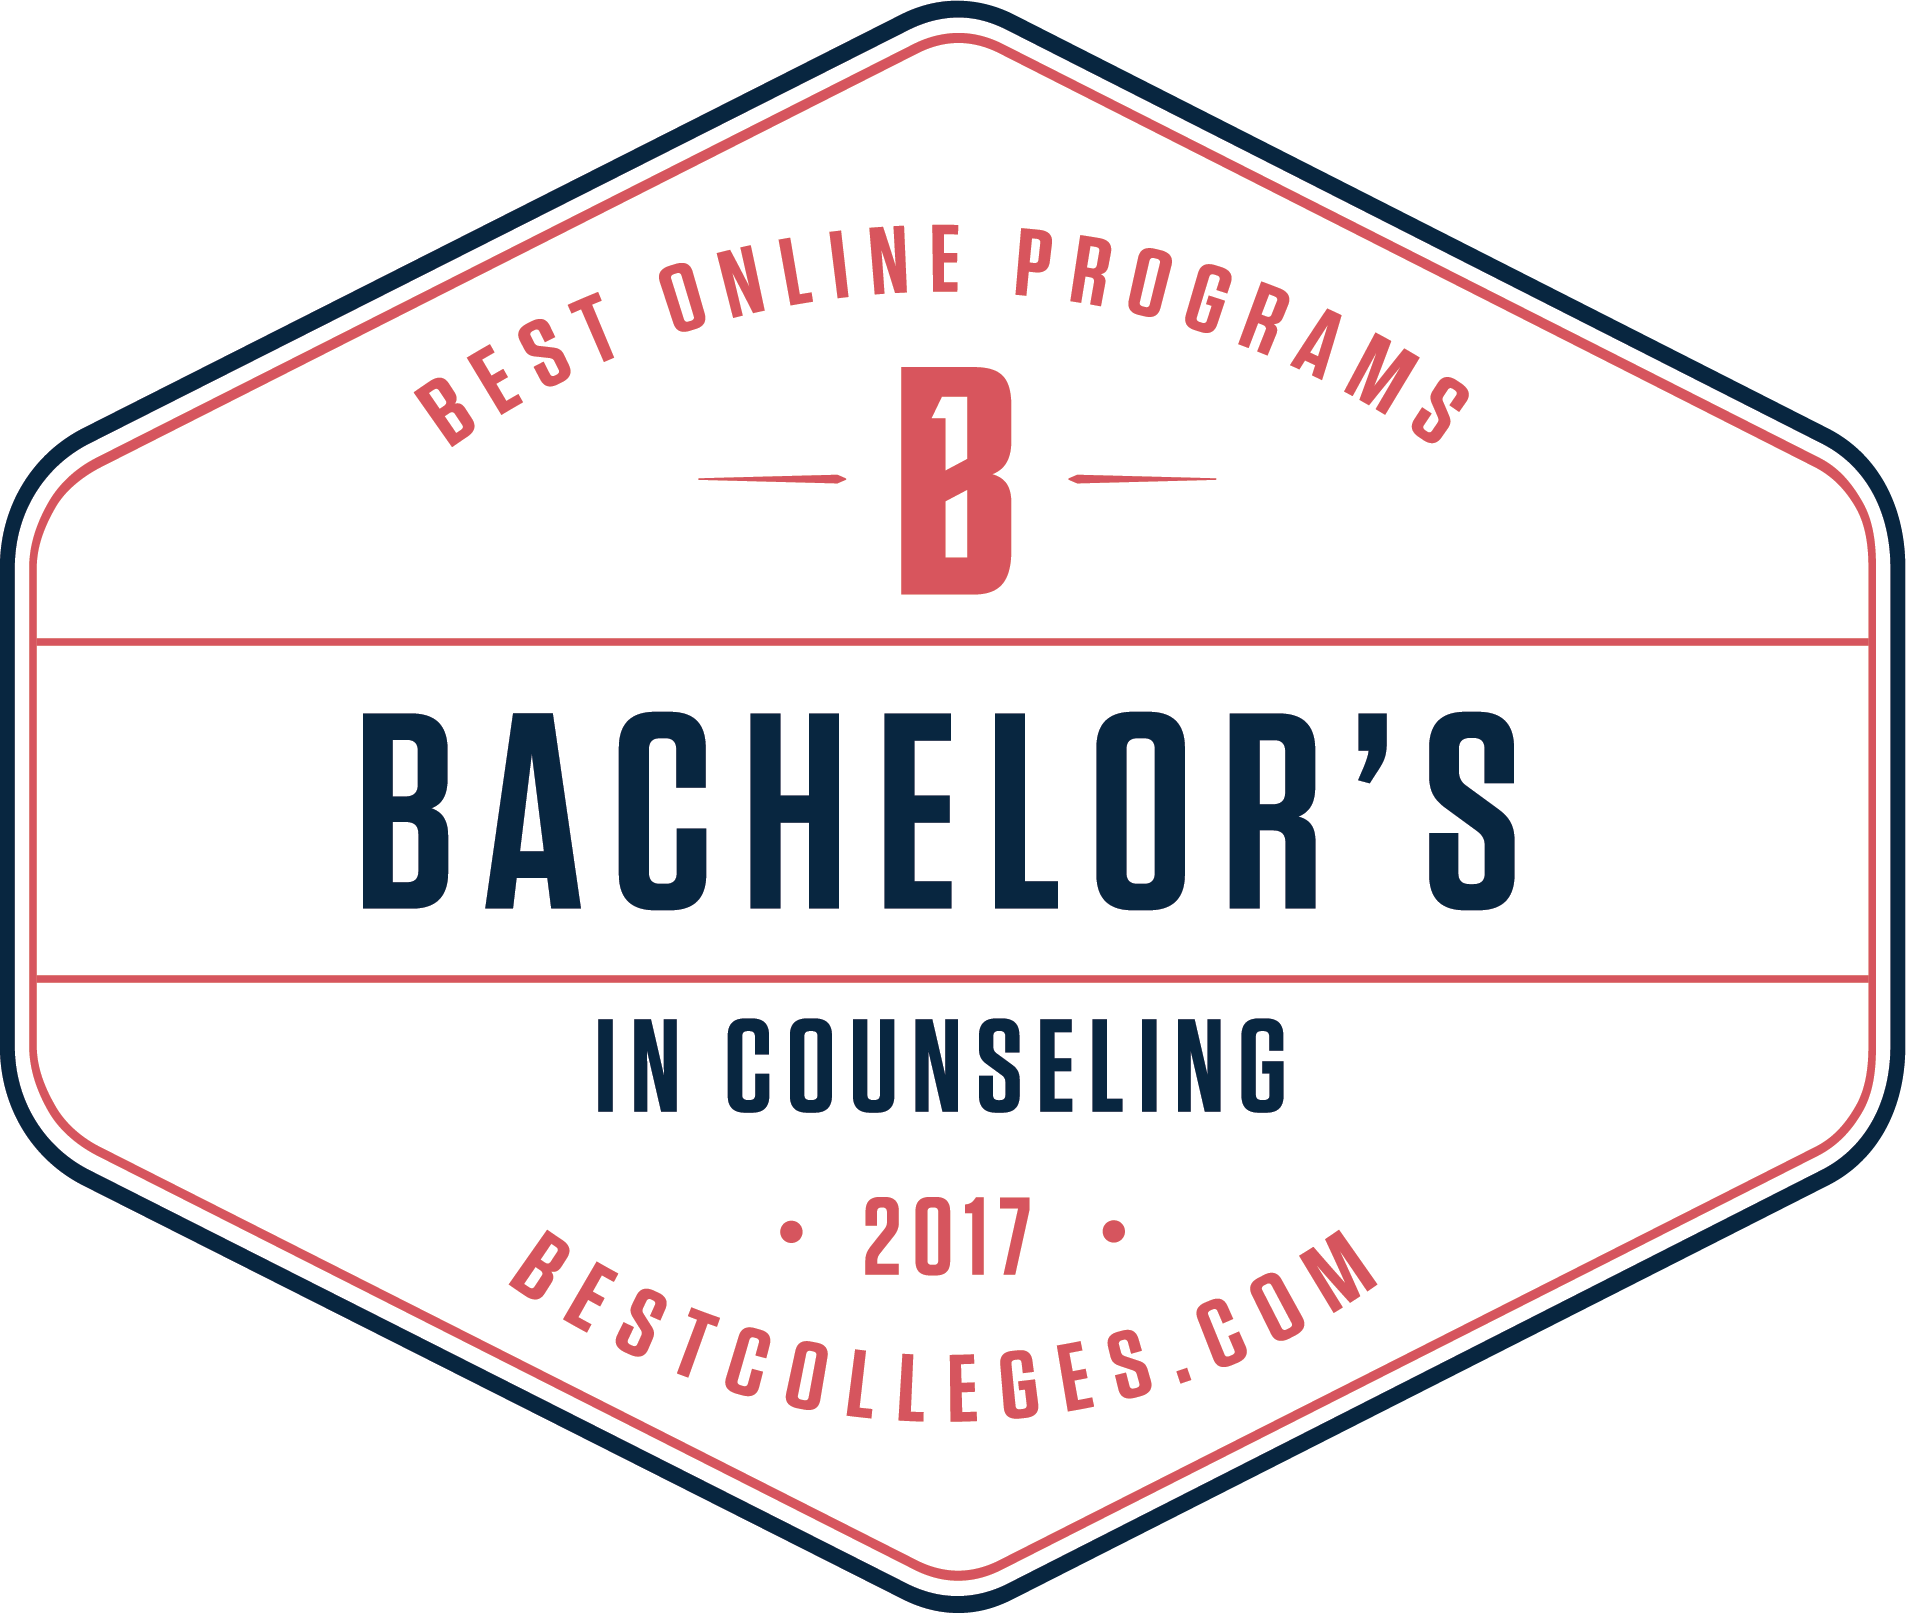 Best Online Programs Counseling